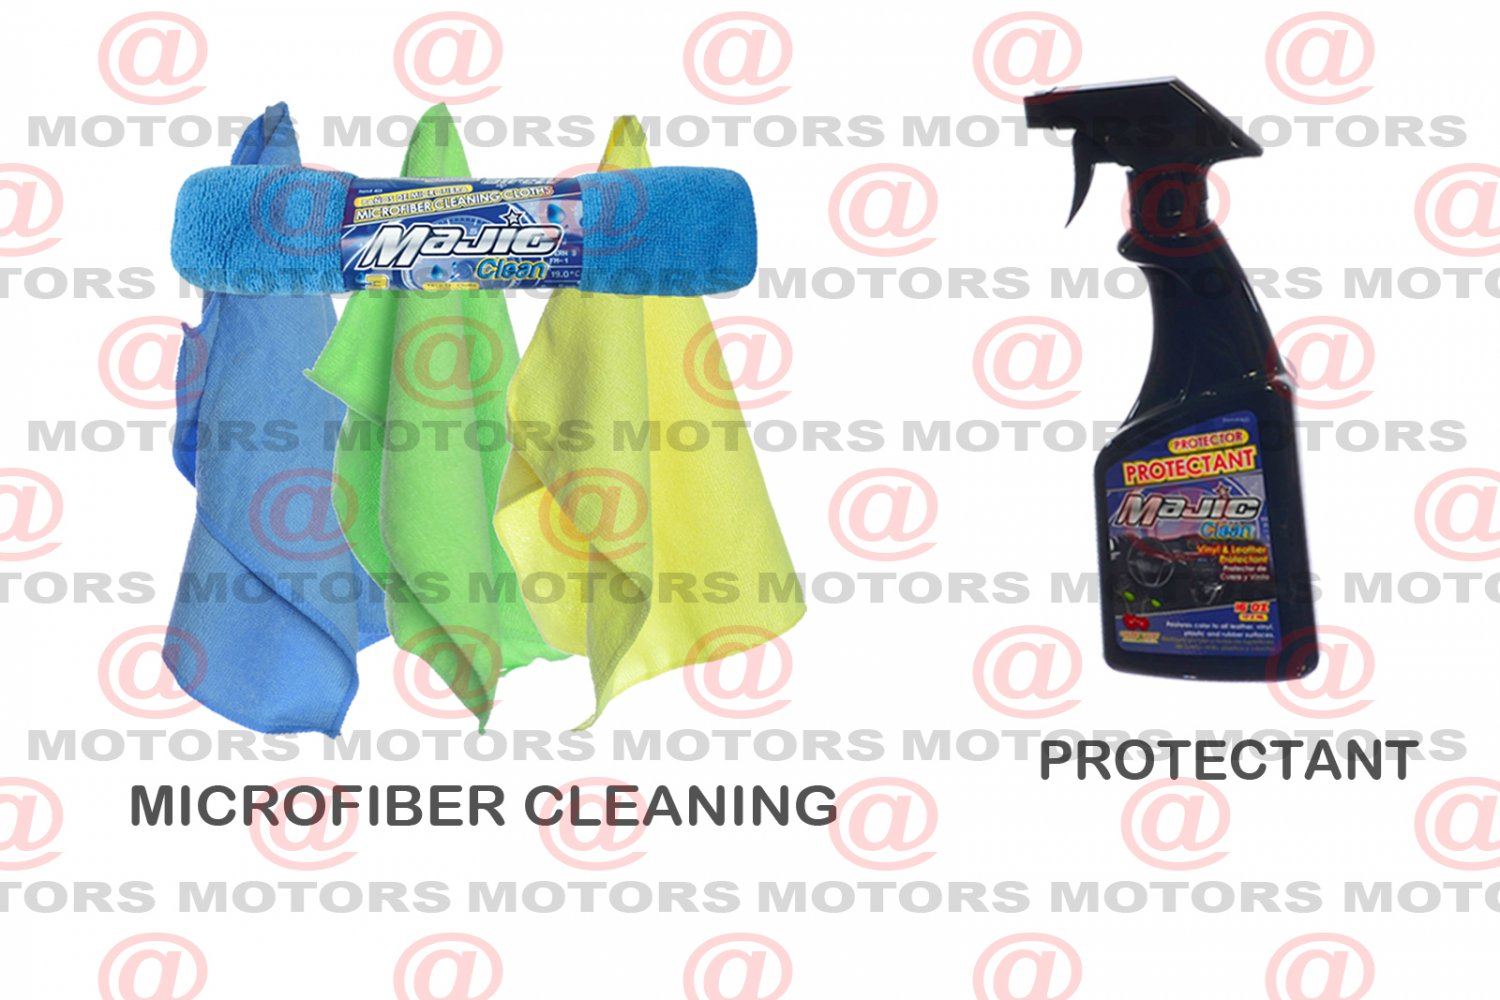 """Majic Protectant 16 oZ Microfiber Cleaning Cloths Size 12""""X16"""" 3 Pk Car Care Kit"""